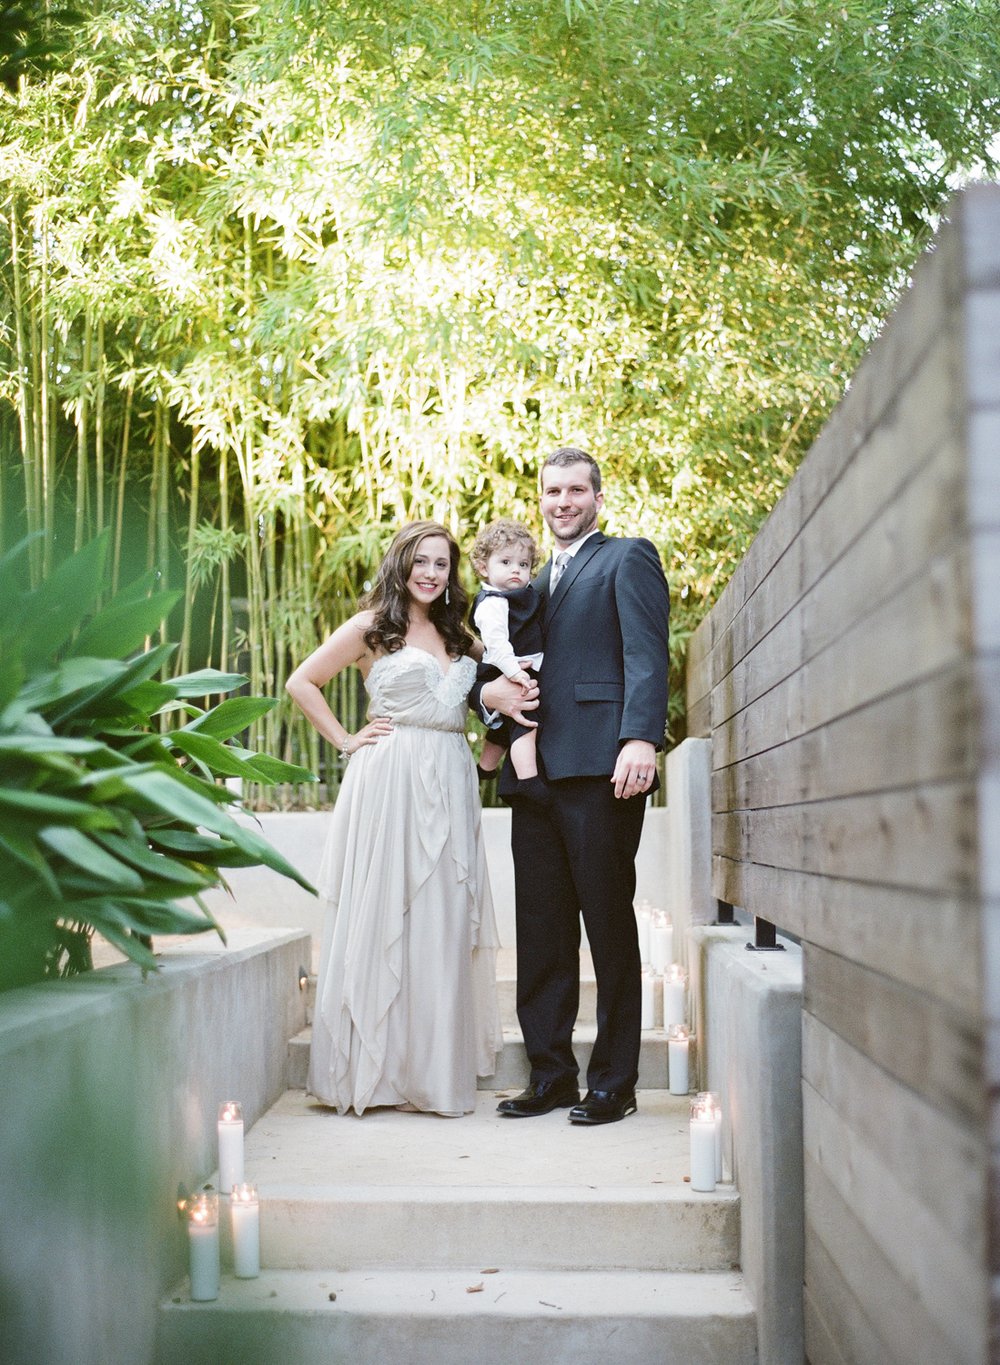 AUSTIN_WEDDING_HOTEL_SAINT_CECILIA_BY_MATTHEW_MOORE_PHOTOGRAPHY_00125.jpg